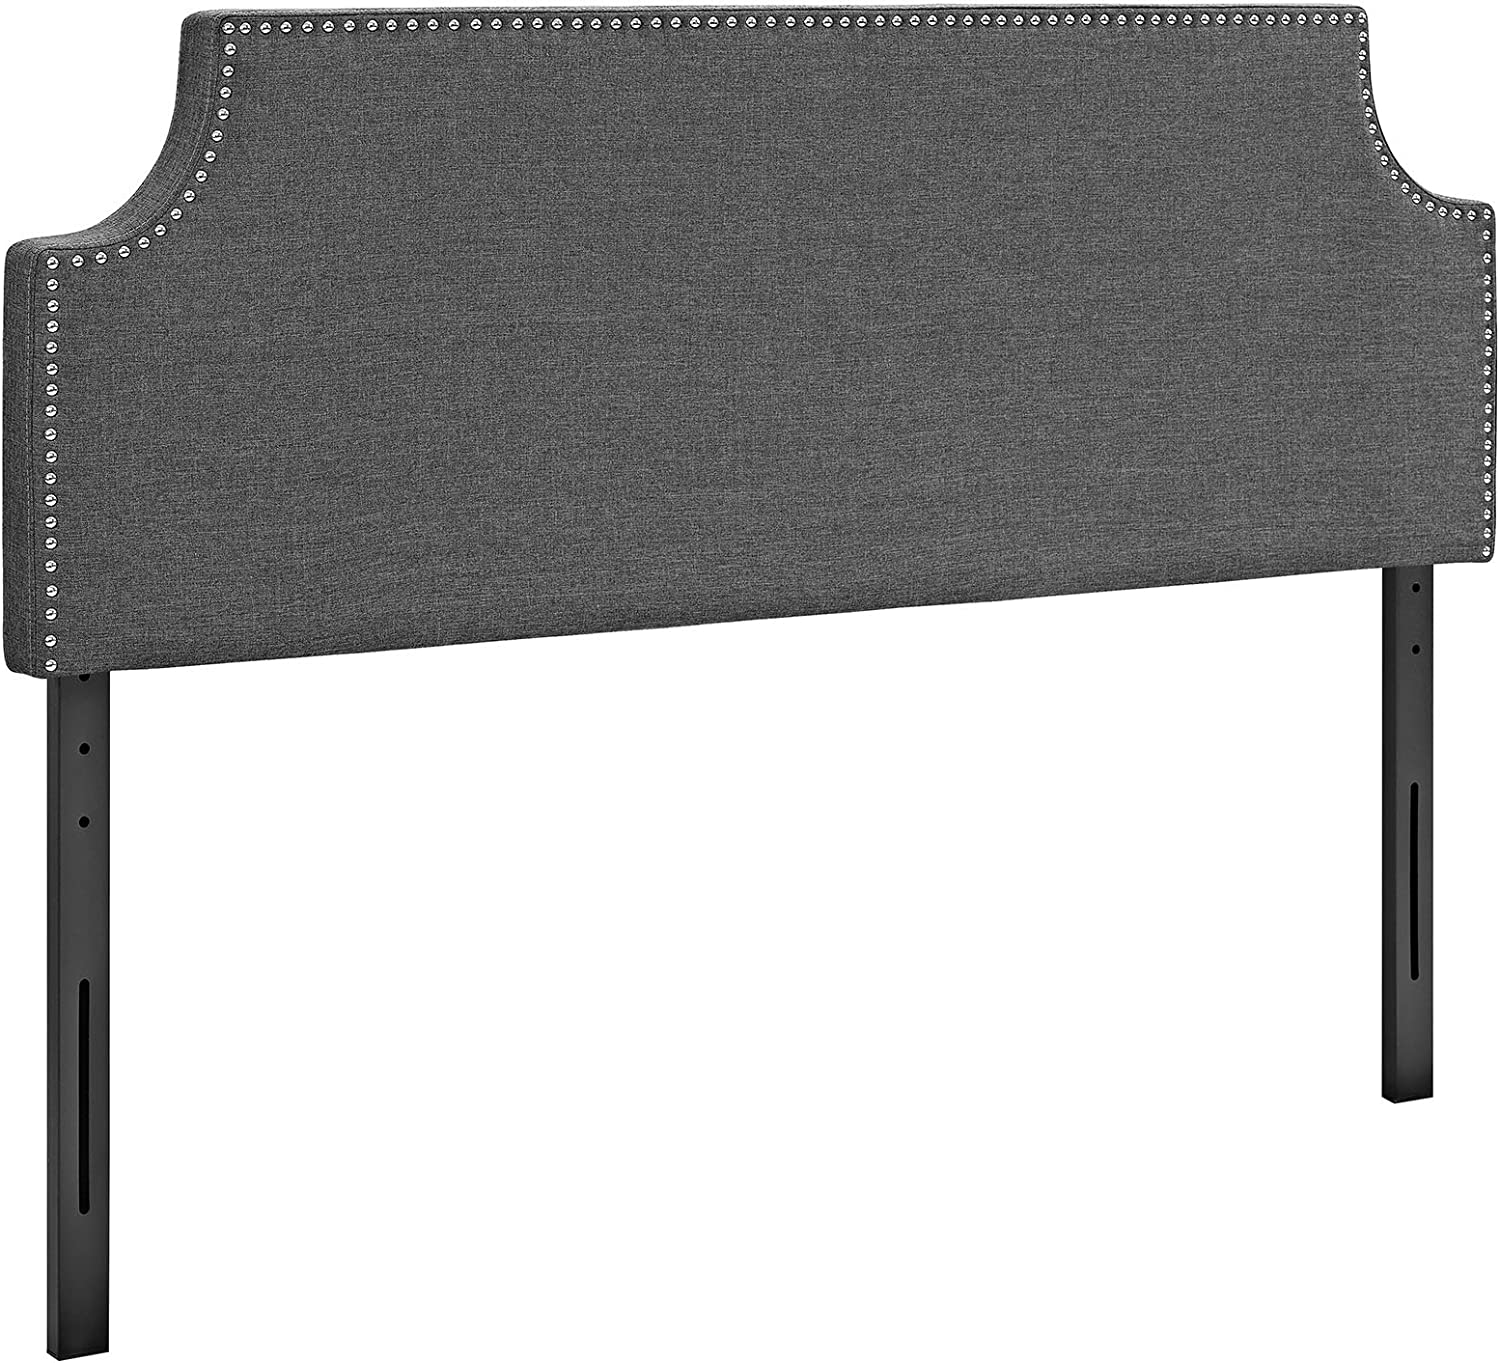 Modway Laura Linen Fabric Upholstered Queen Size Headboard with Cut-Out Edges and Nailhead Trim in Gray